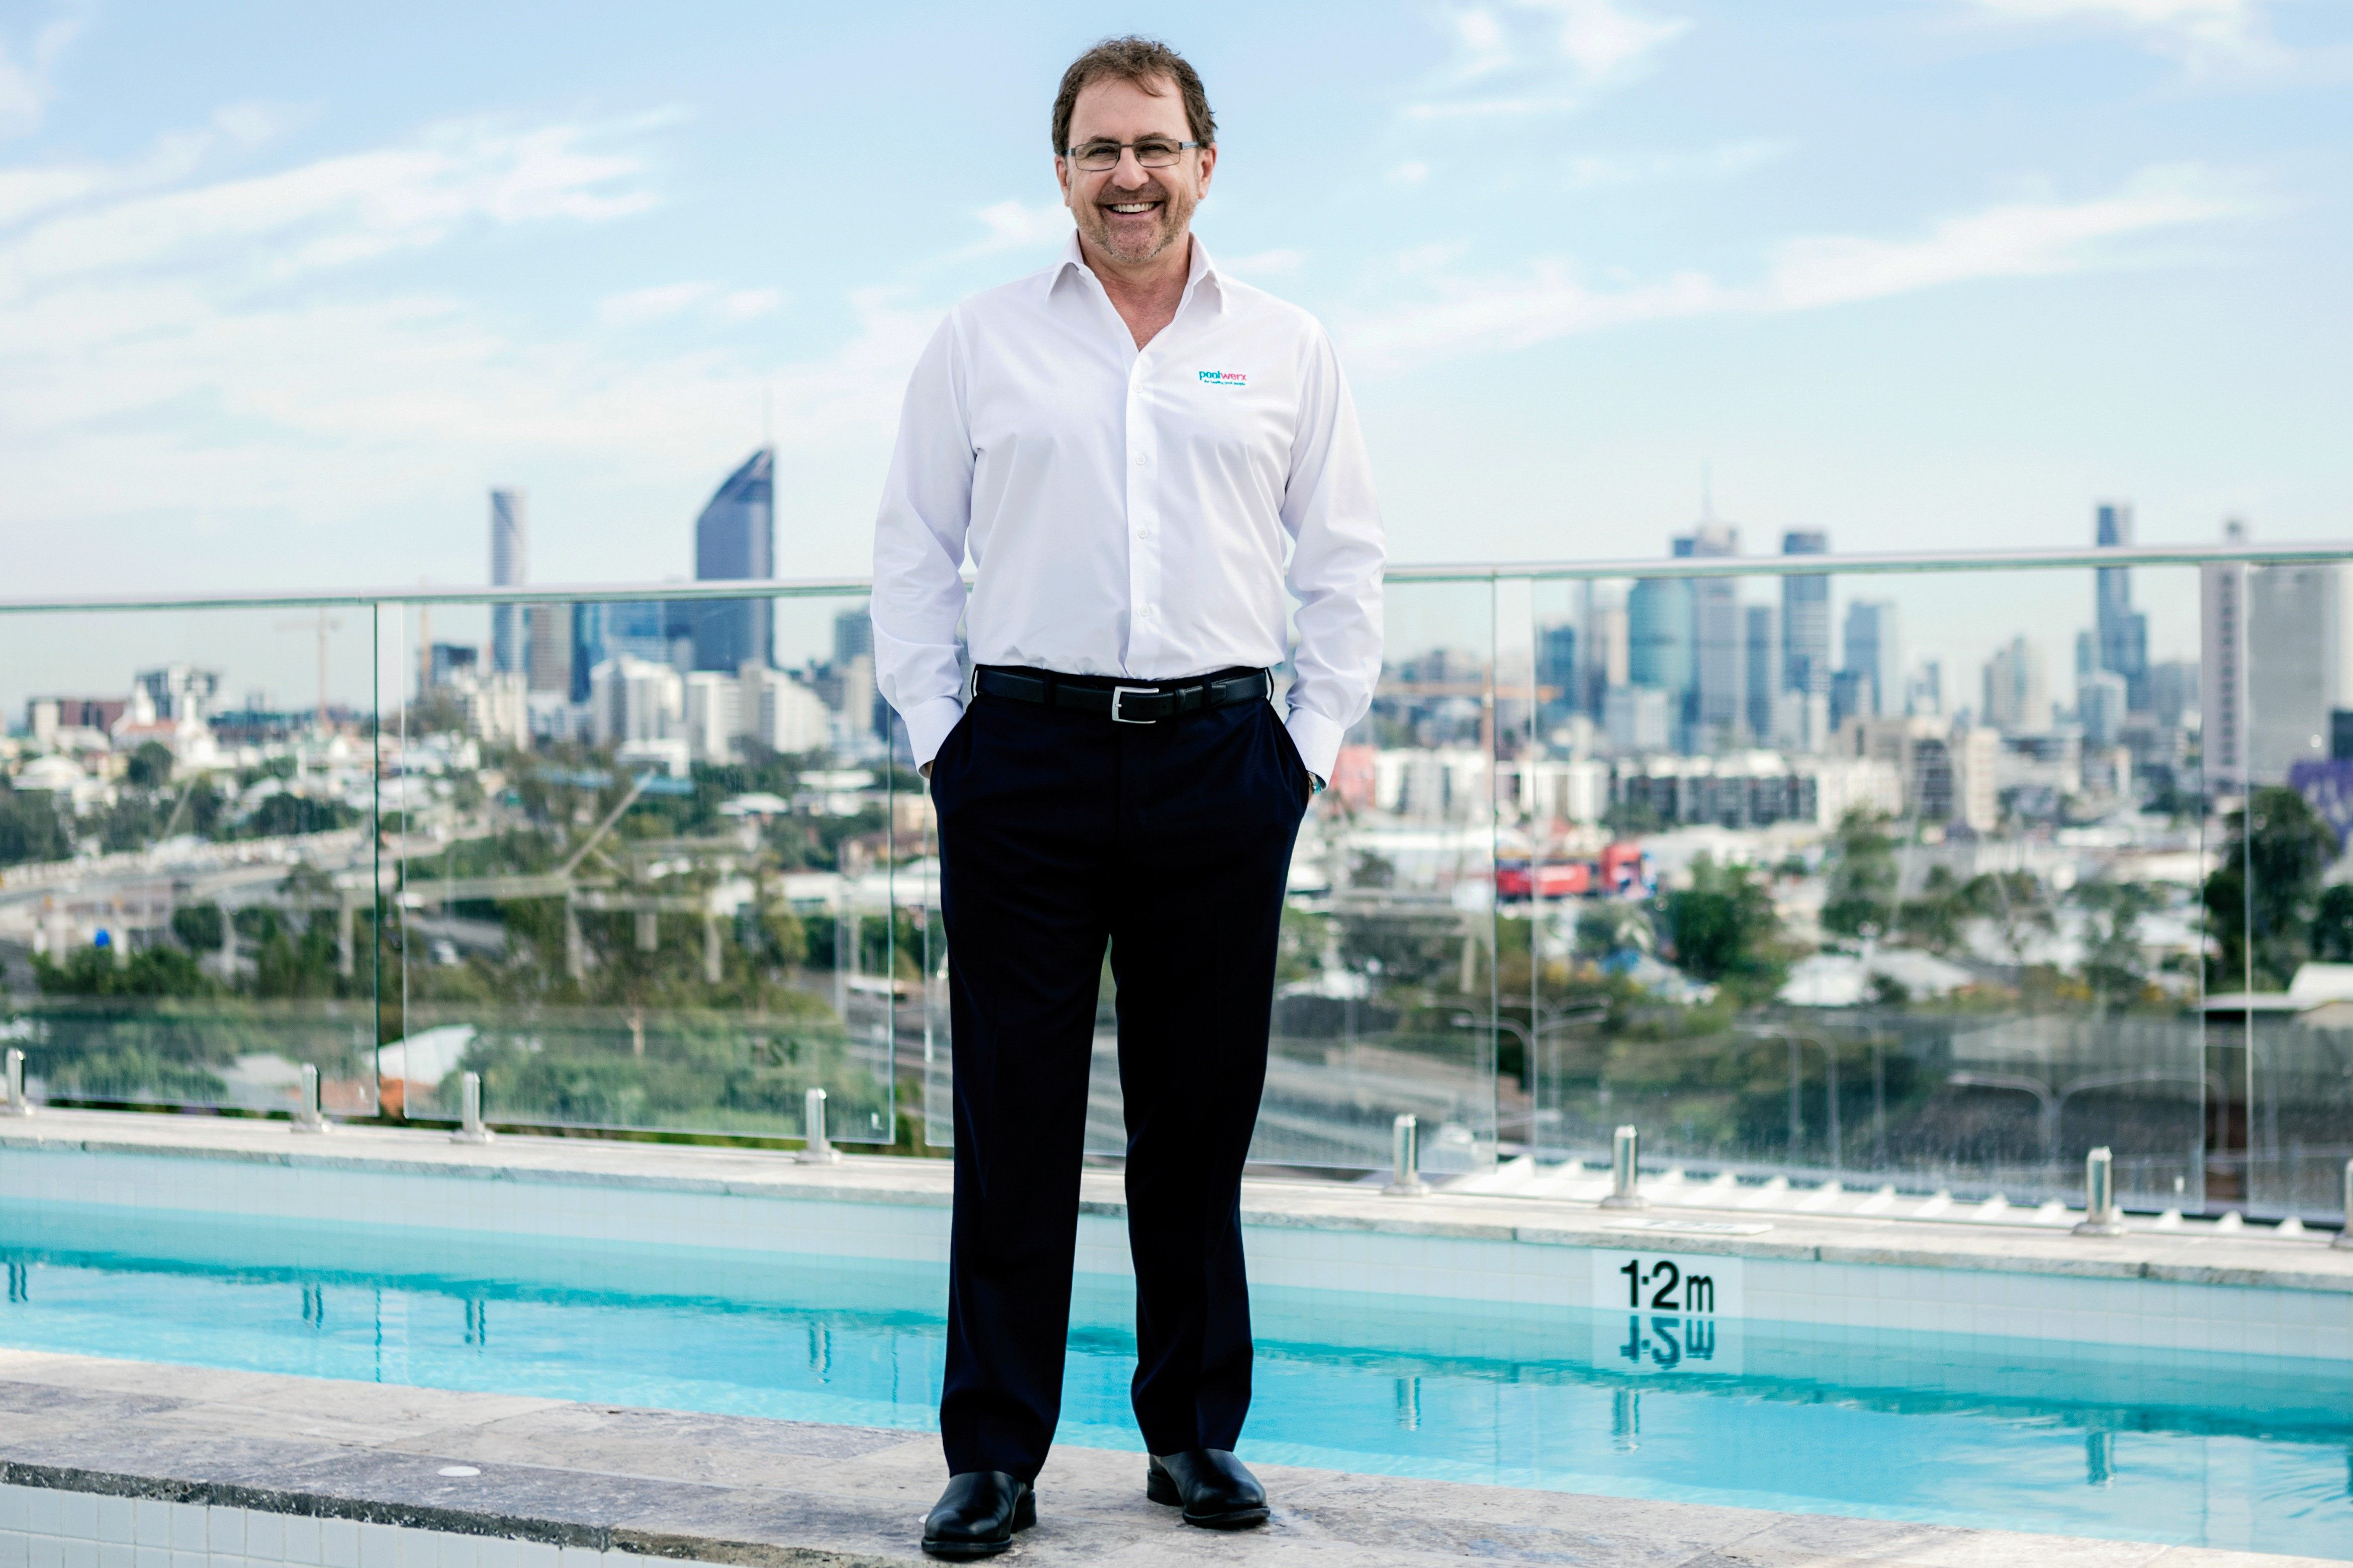 Poolwerx opens 11 stores says CEO John O'Brien | Inside Franchise Business Executive